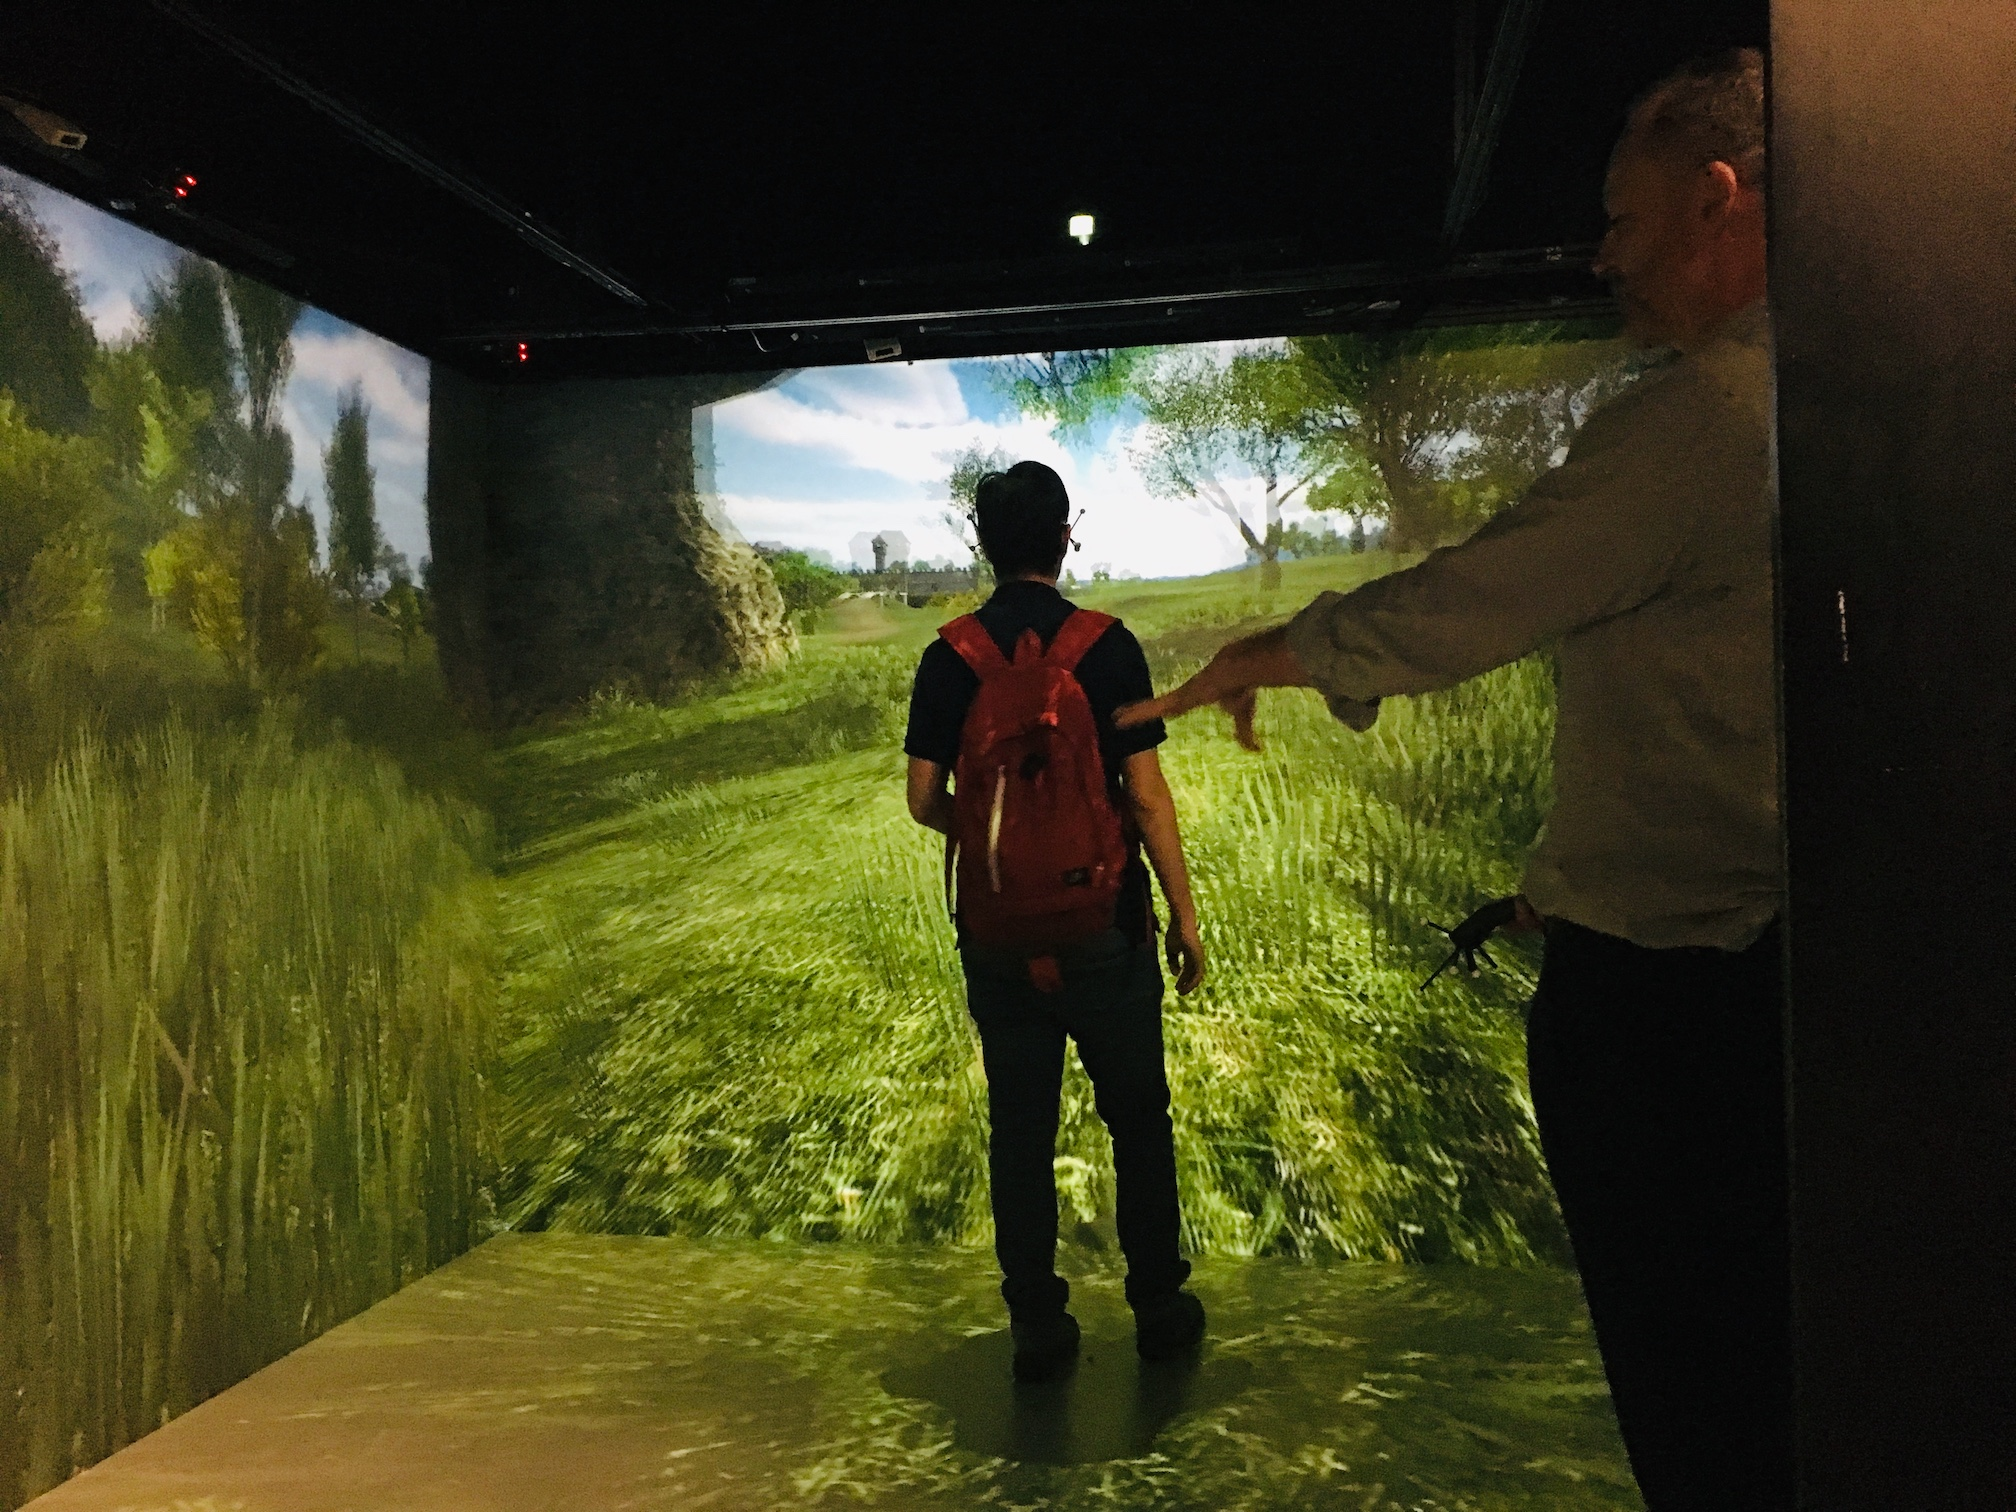 Student wearing backpack using virtual reality cave  displaying an open field landscape with tutor pictured to the side.